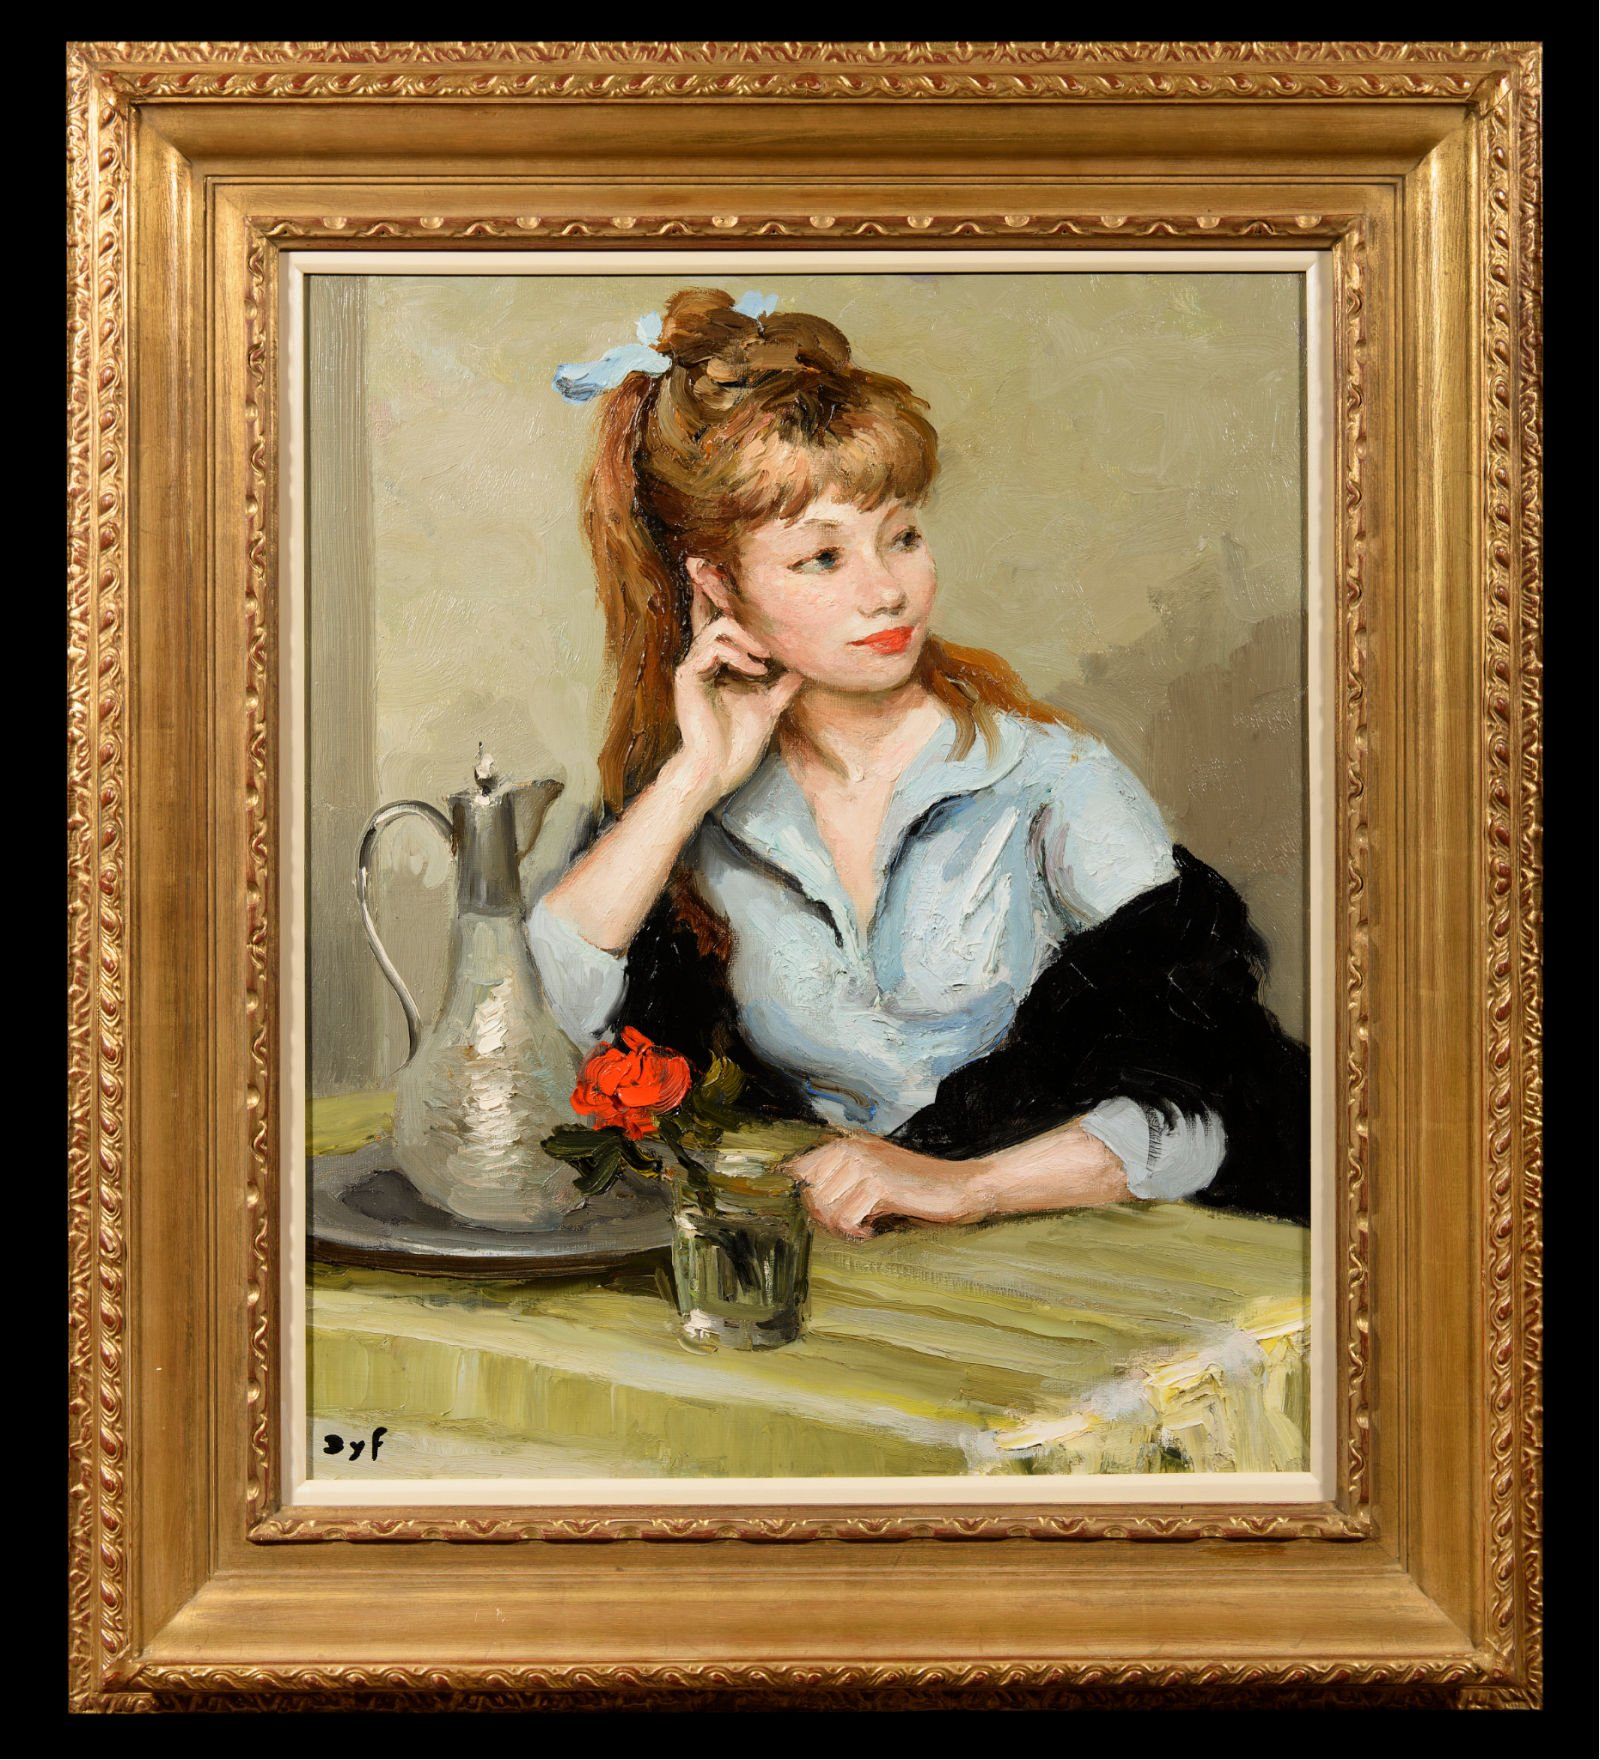 Marcel Dyf's wife sitting at a table with a vase and red rose on it